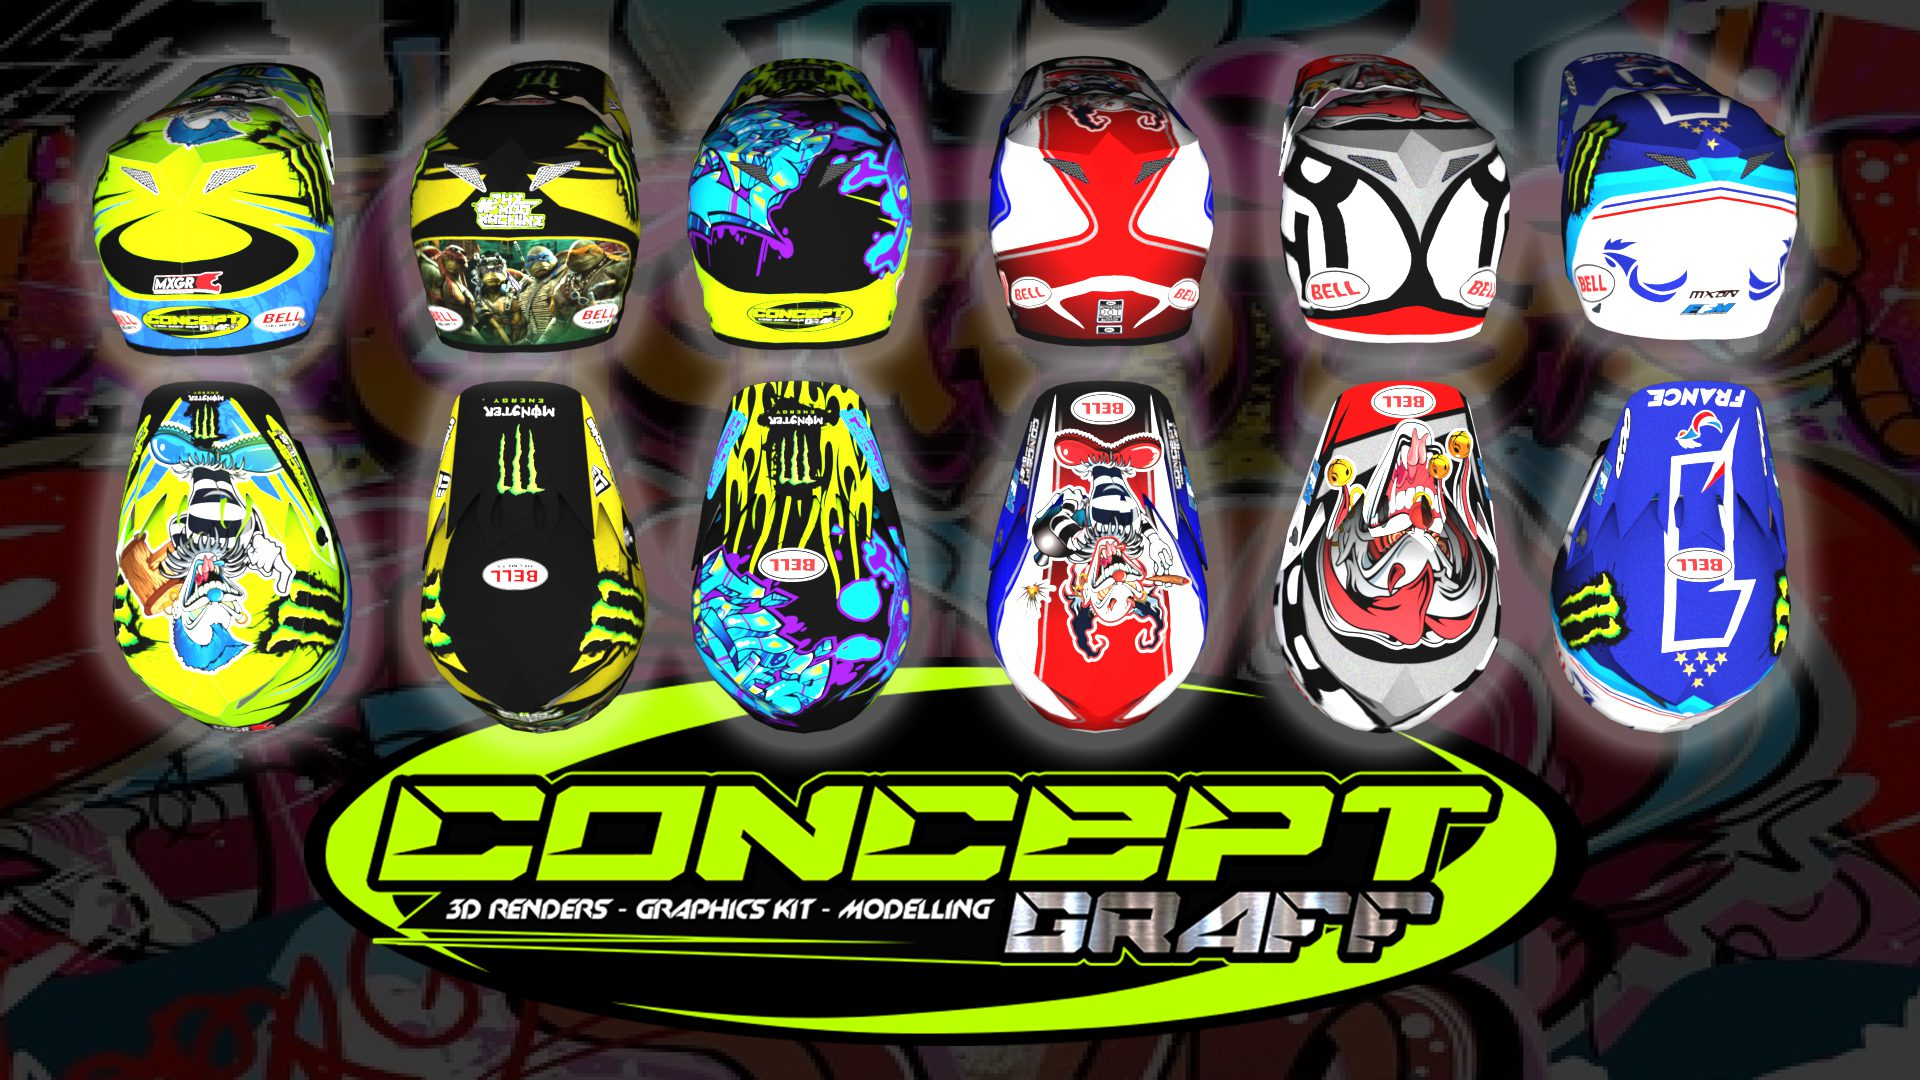 2019 Bell custom pack ConceptgraffMXS ( new insane model base )